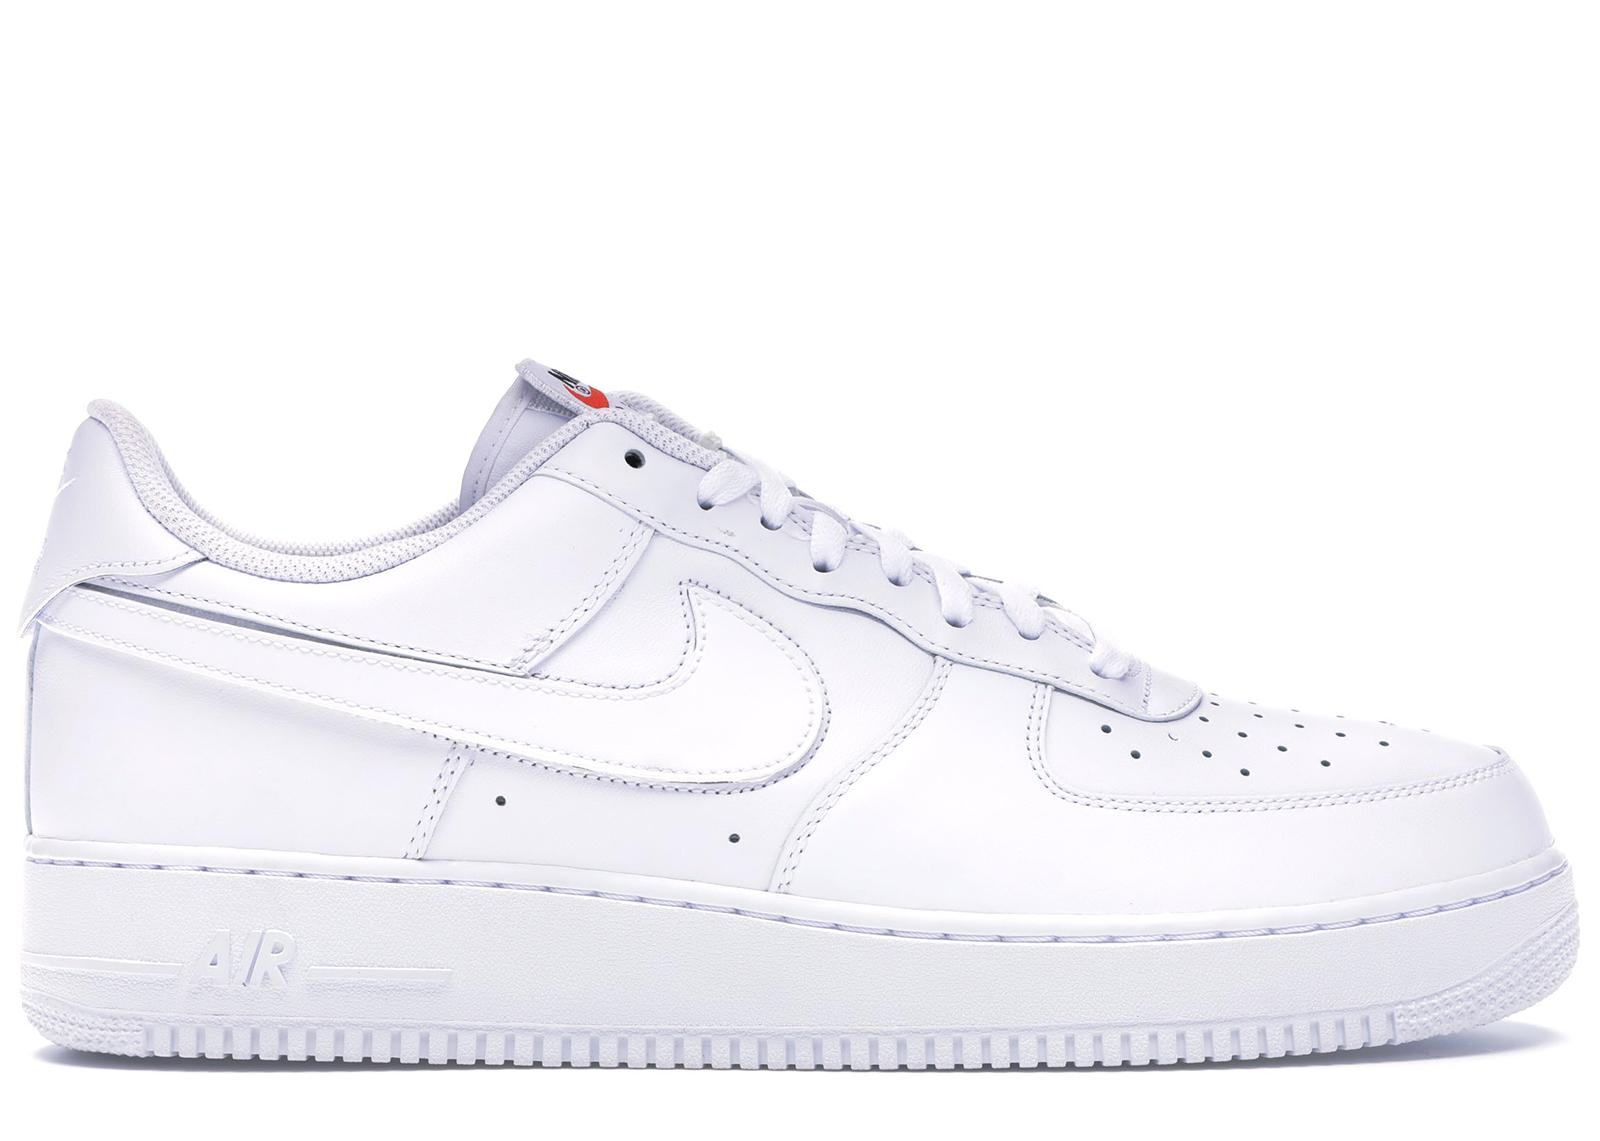 Nike Air Force 1 Low Swoosh Pack All star 2018 (white) for